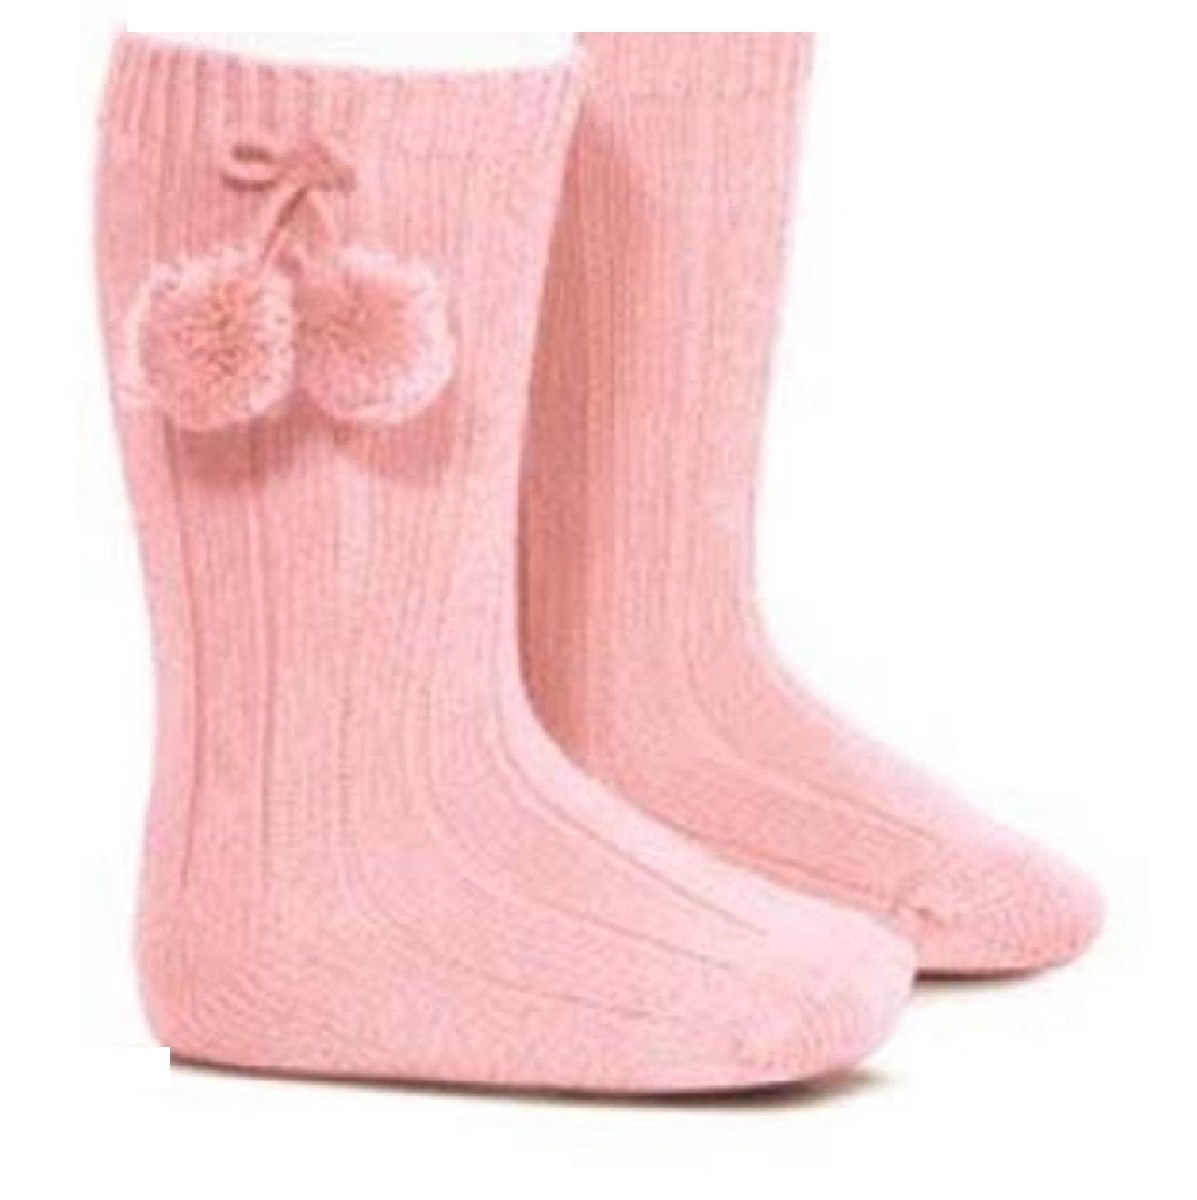 Baby Girls Cute Knee High Pom Pom Pink Ribbed Socks (Baby) Baby Best Buys PX5265 255